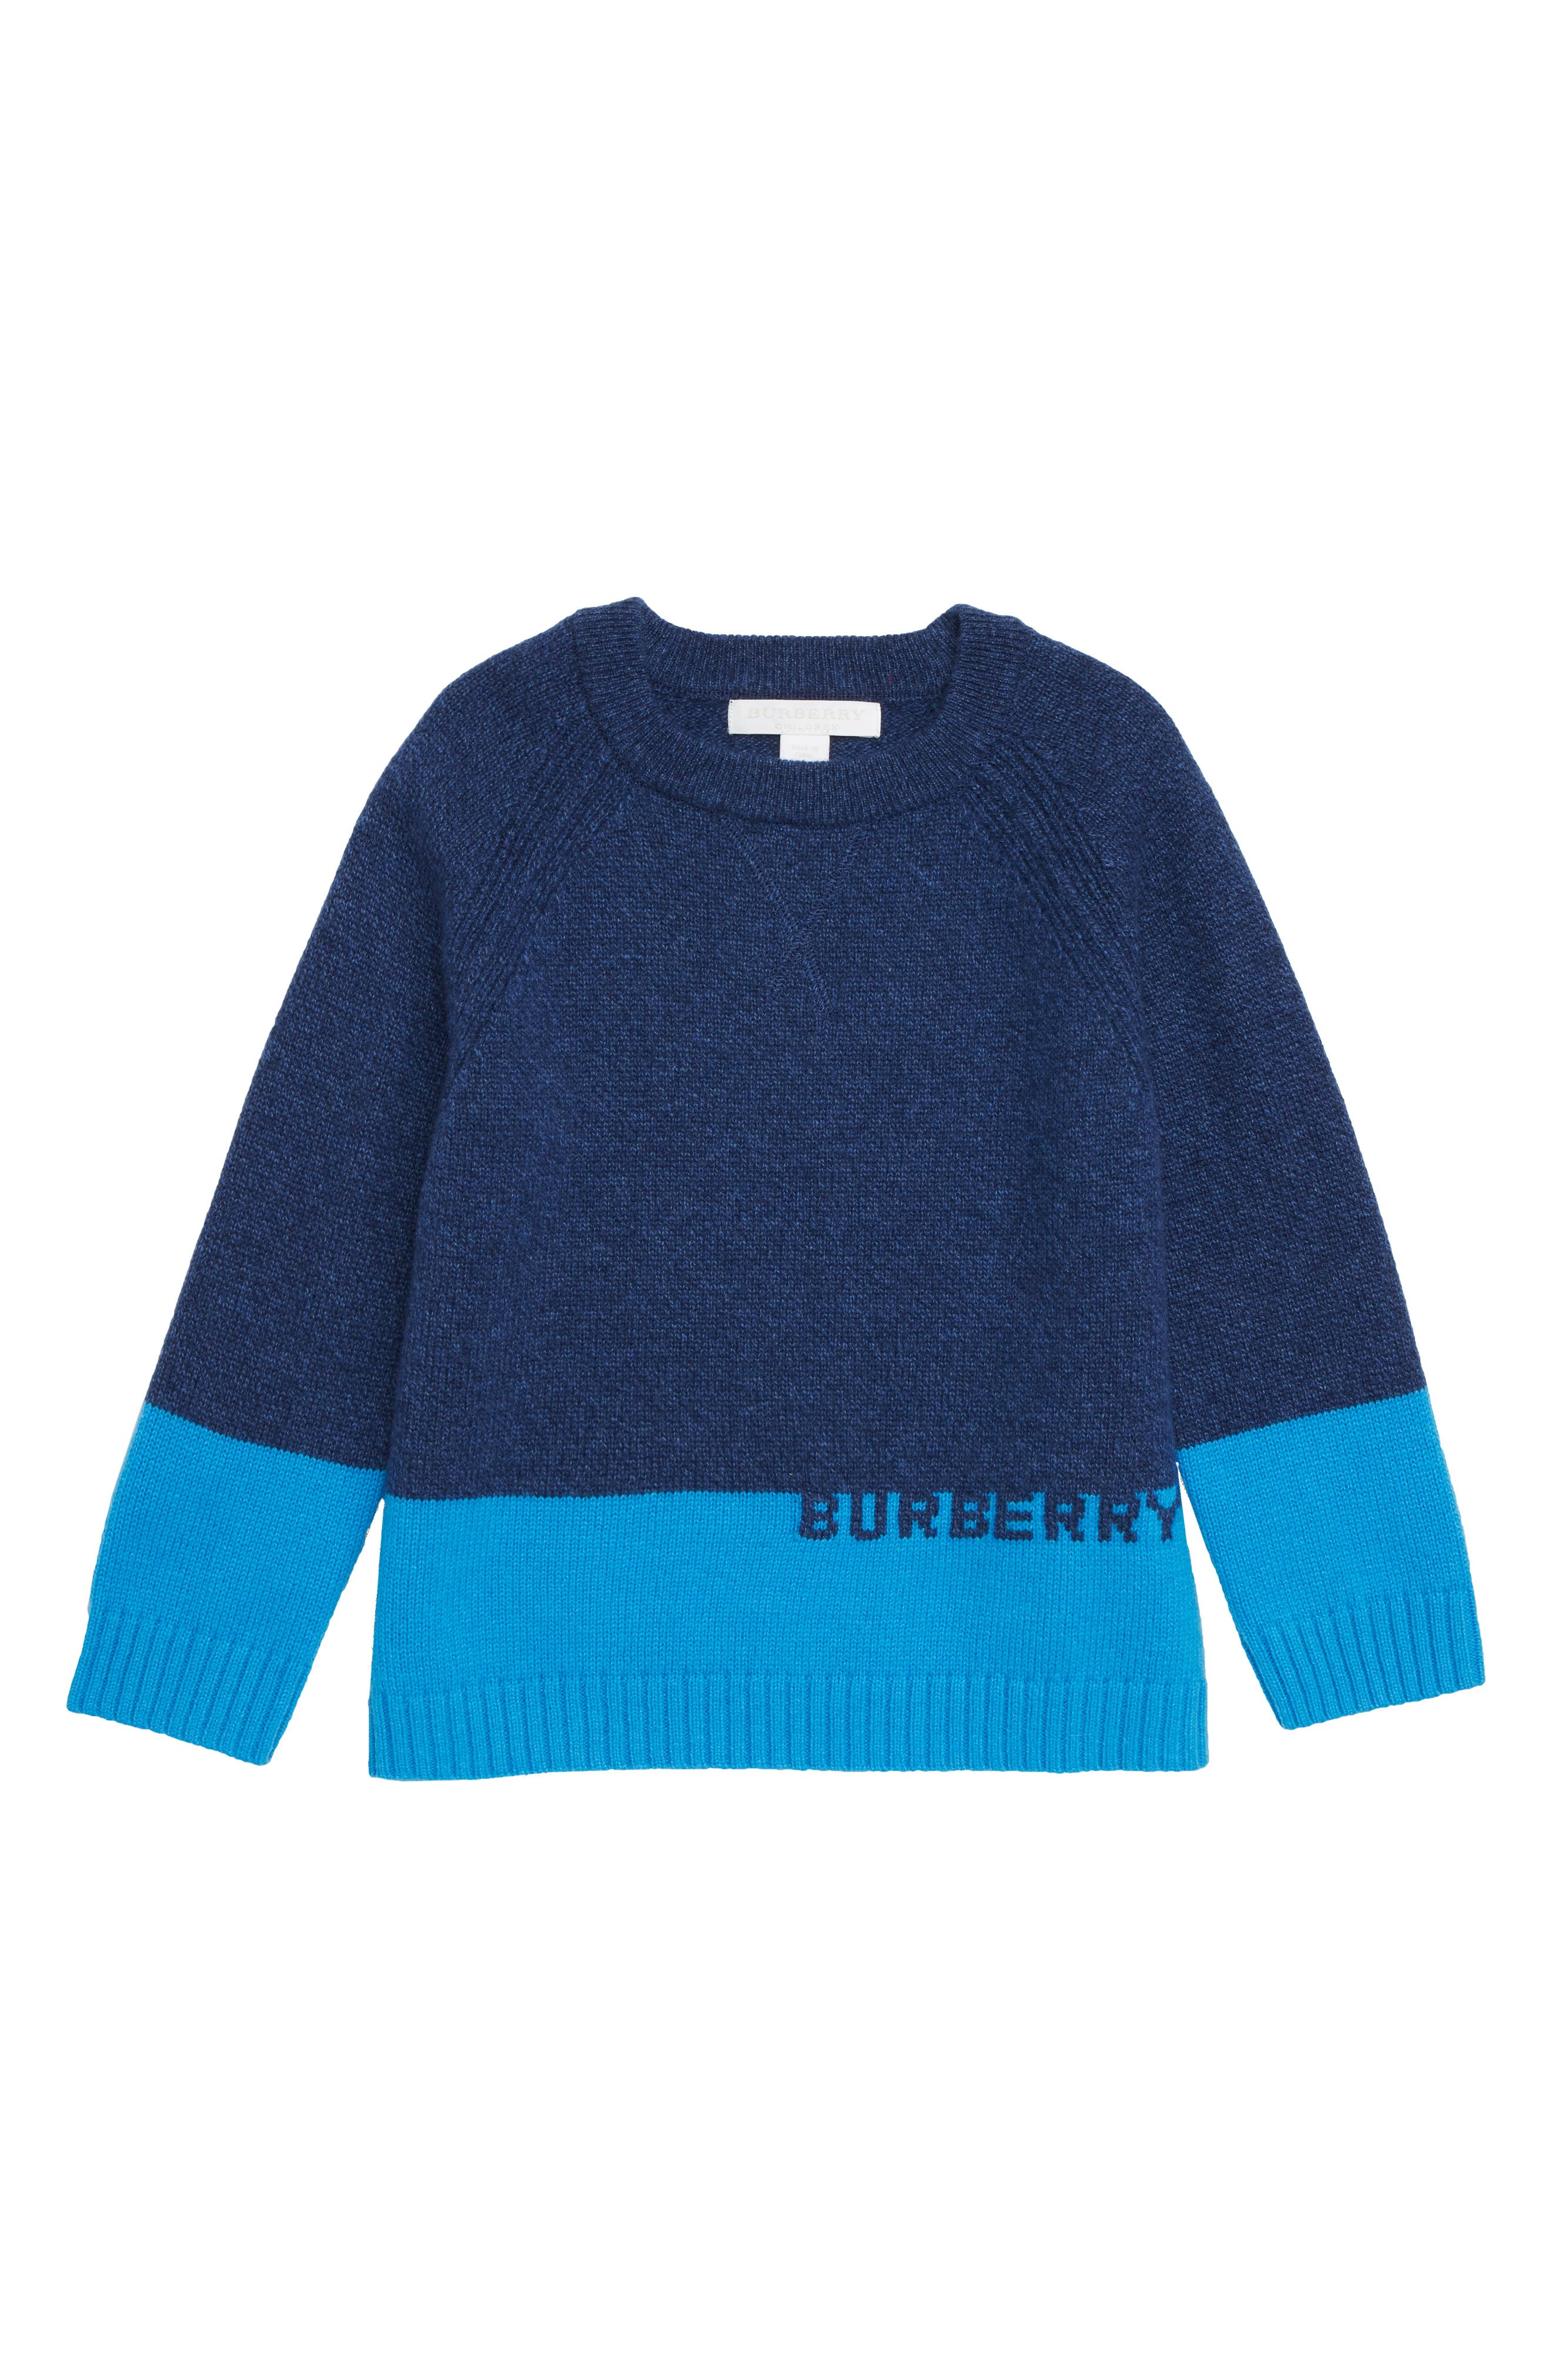 Boys Burberry Logo Intarsia Pullover Sweater Size 12Y  Blue